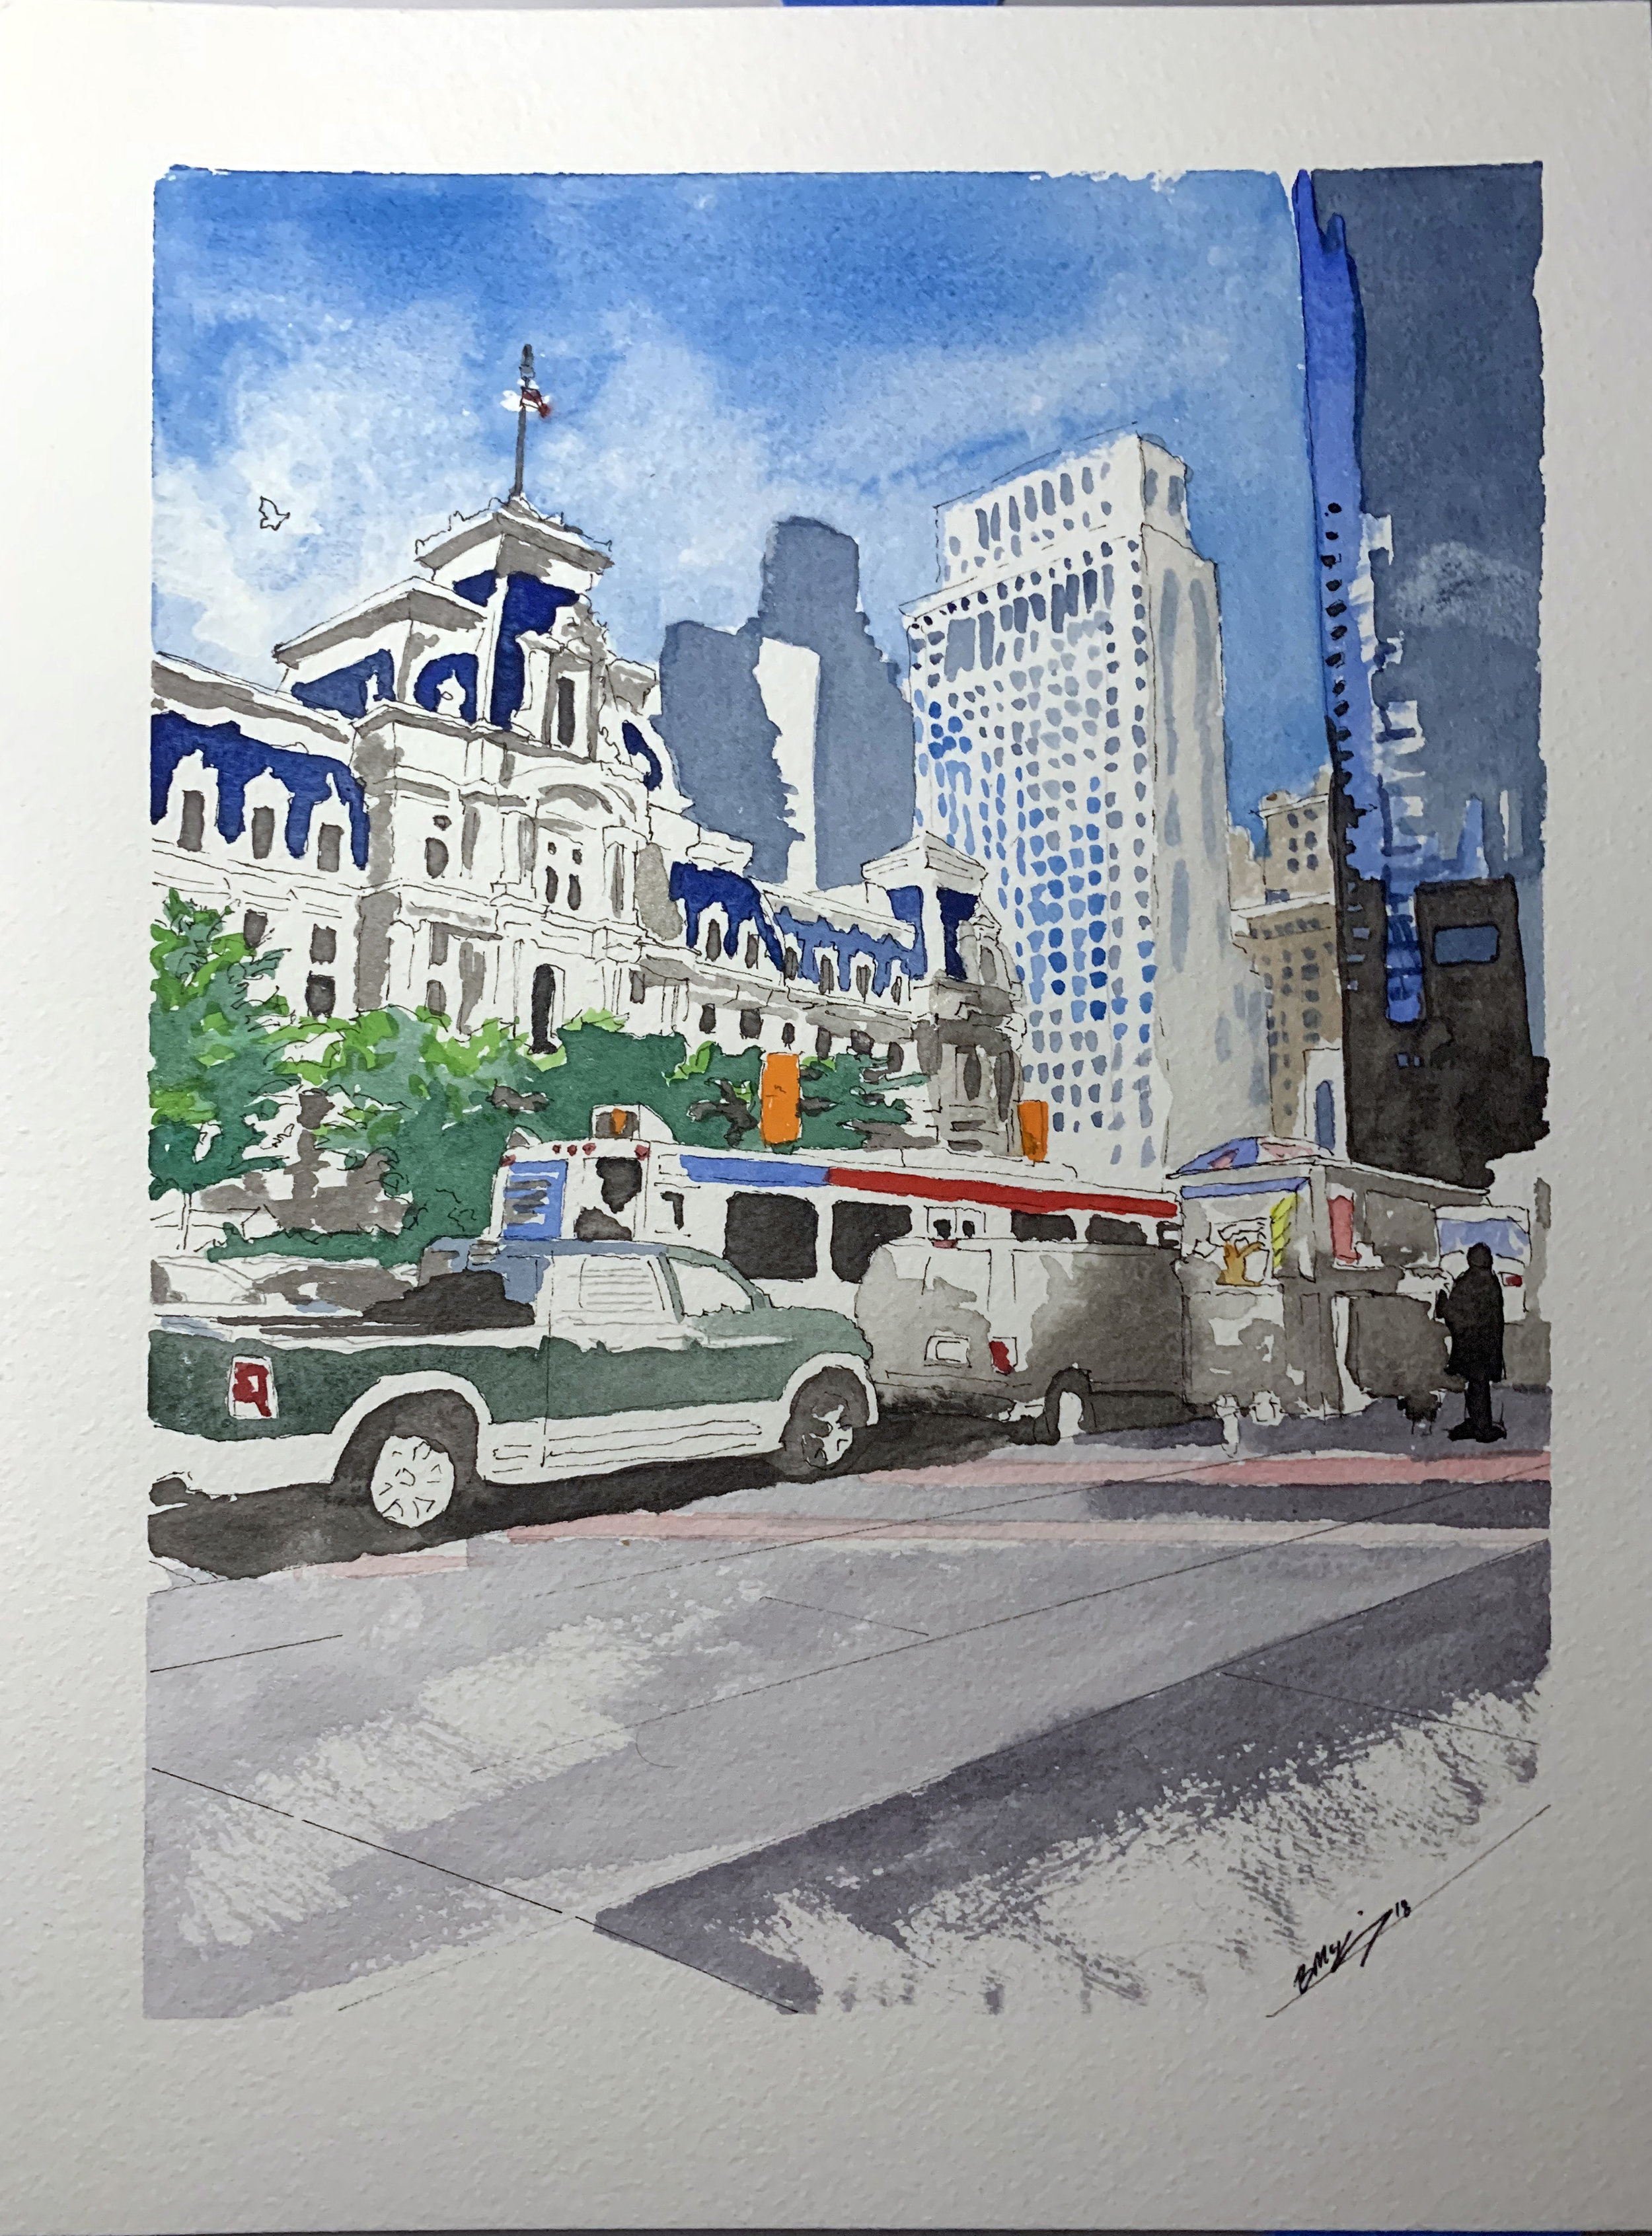 Septa and City Hall, 9x12 inches, watercolor, ink wash and pen on 140lb, Feb 2019